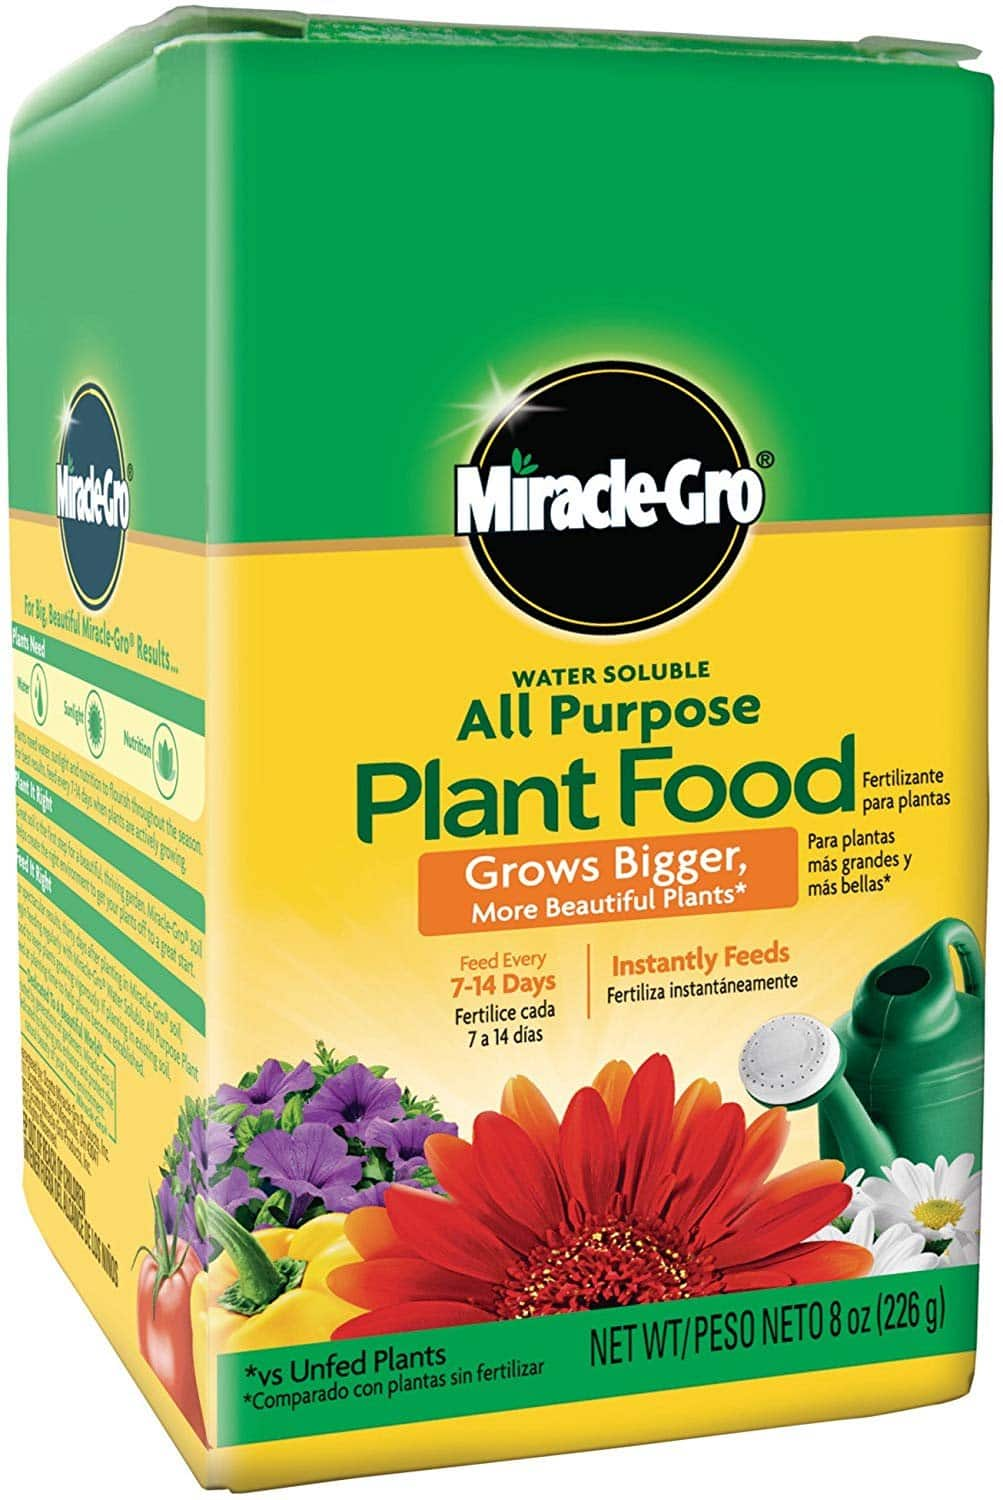 Miracle-Gro 2000992 Water Soluble All Purpose Plant Food, 0.5 LB, Six Pack (Contractor Case) $13.54